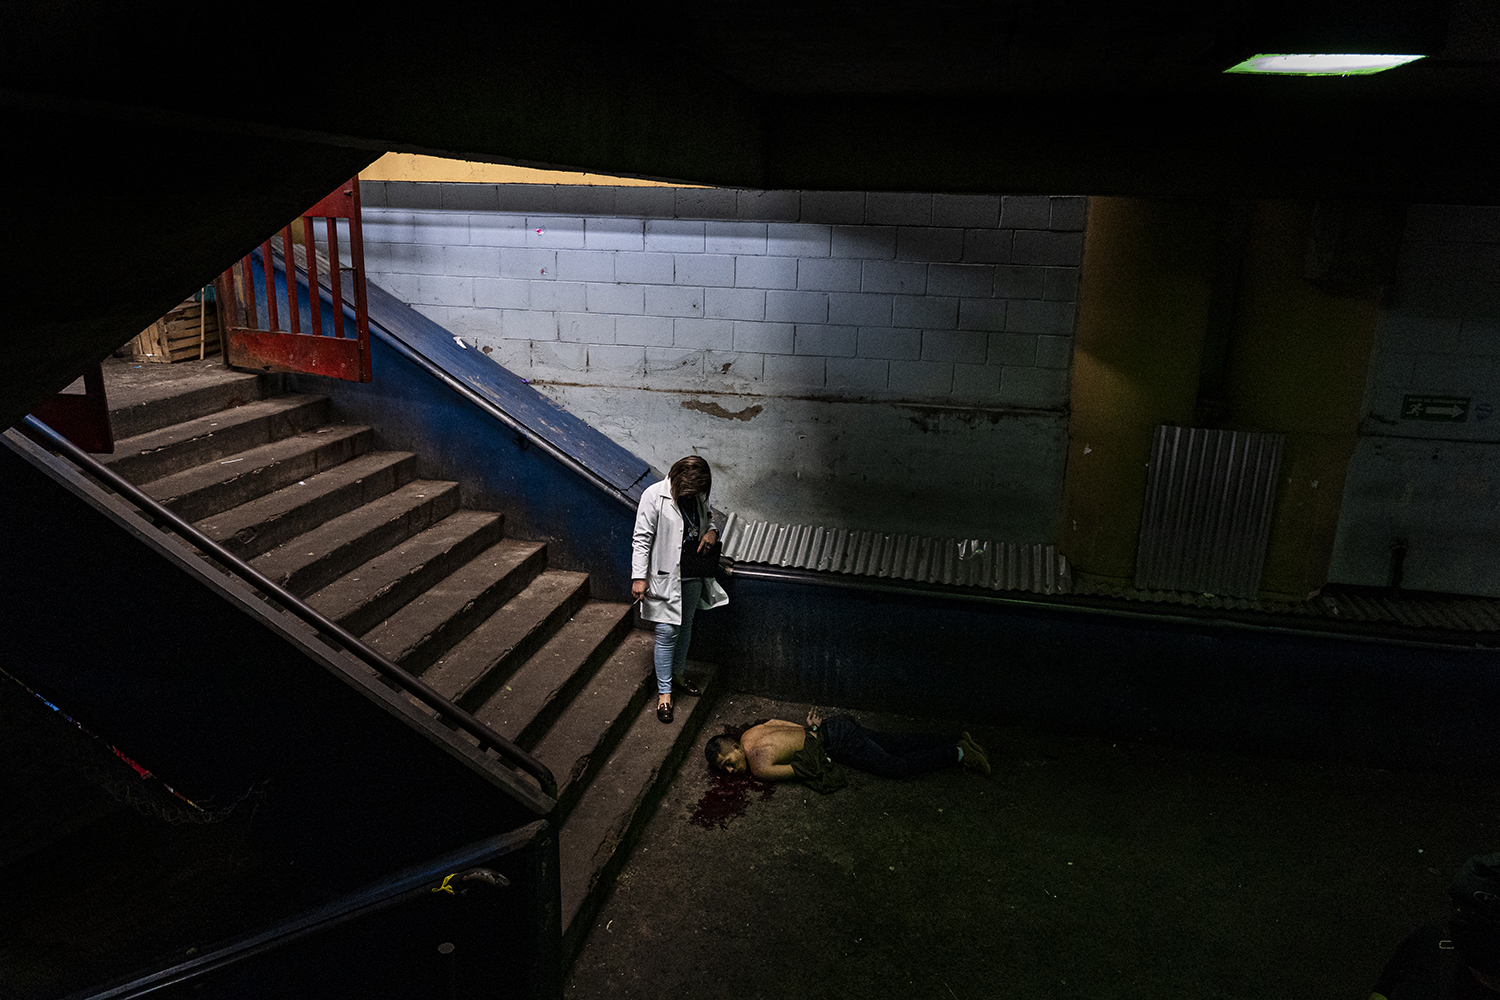 A forensic policewoman stands over a body in one of the busiest places in the capital—the San Salvador Central Market—on Sept. 25. The victim was handcuffed behind his back and shot seven times at around 10:30 in the morning, the National Civil Police reported.